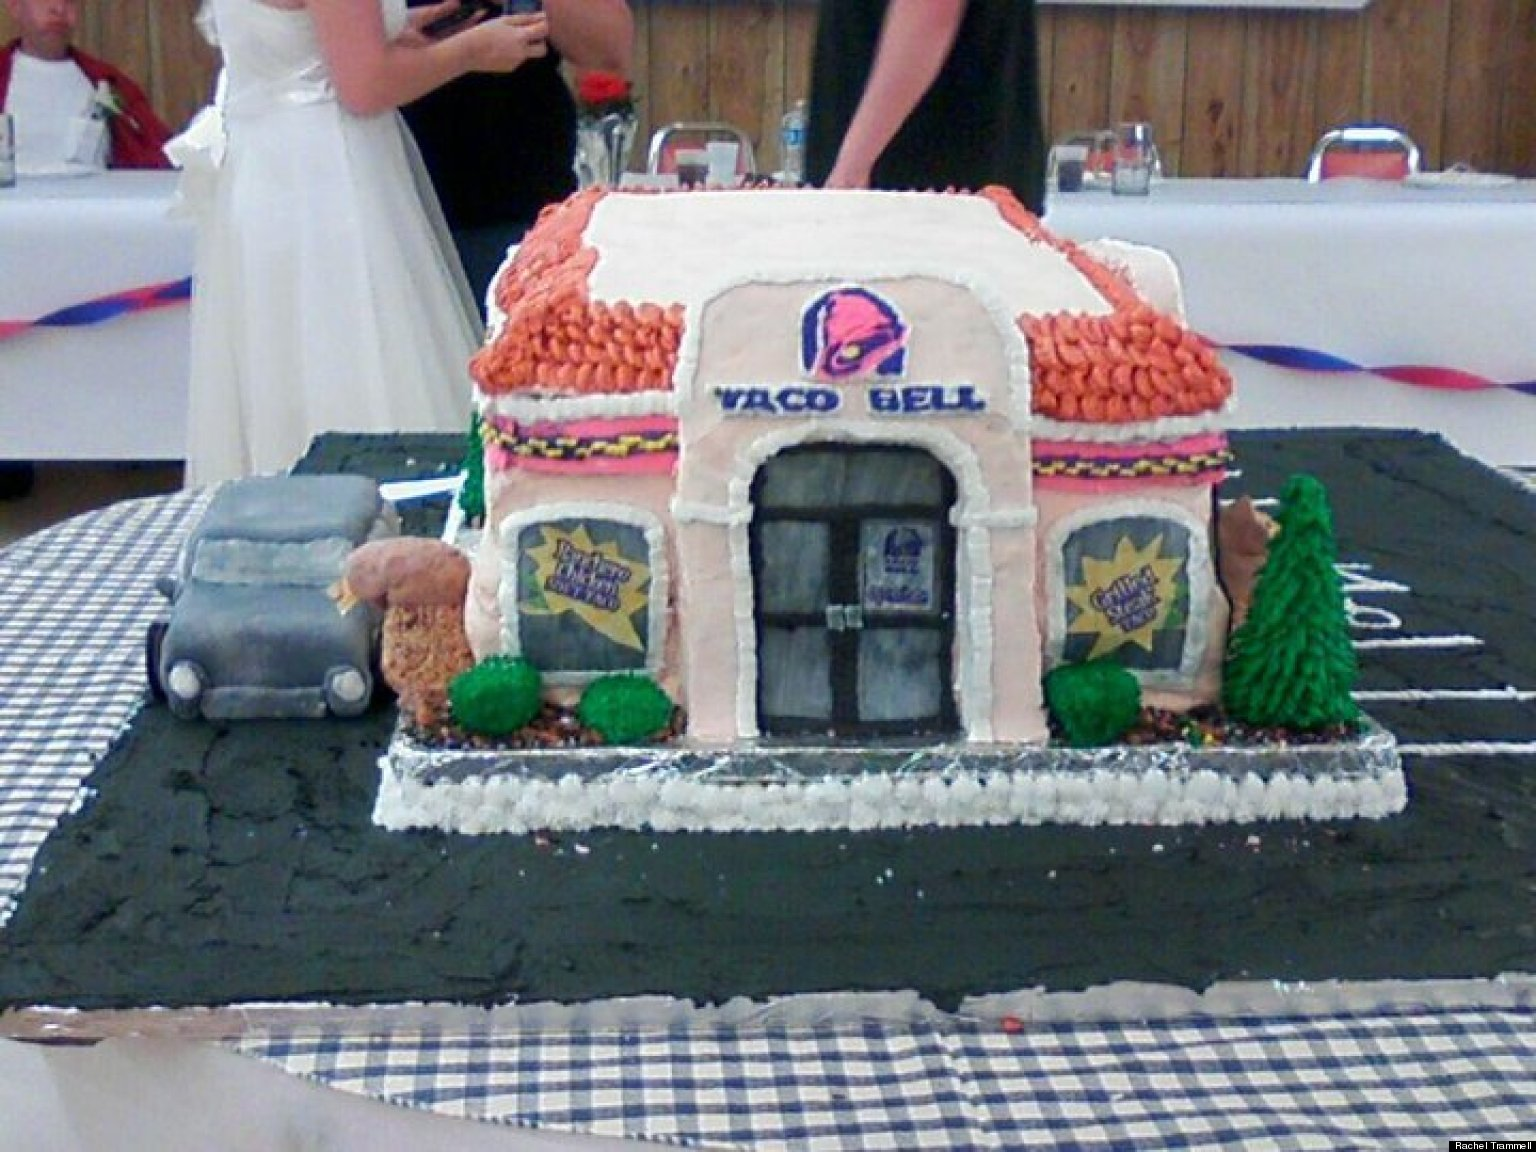 Taco Bell Weddings And Engagements Are More Common Than